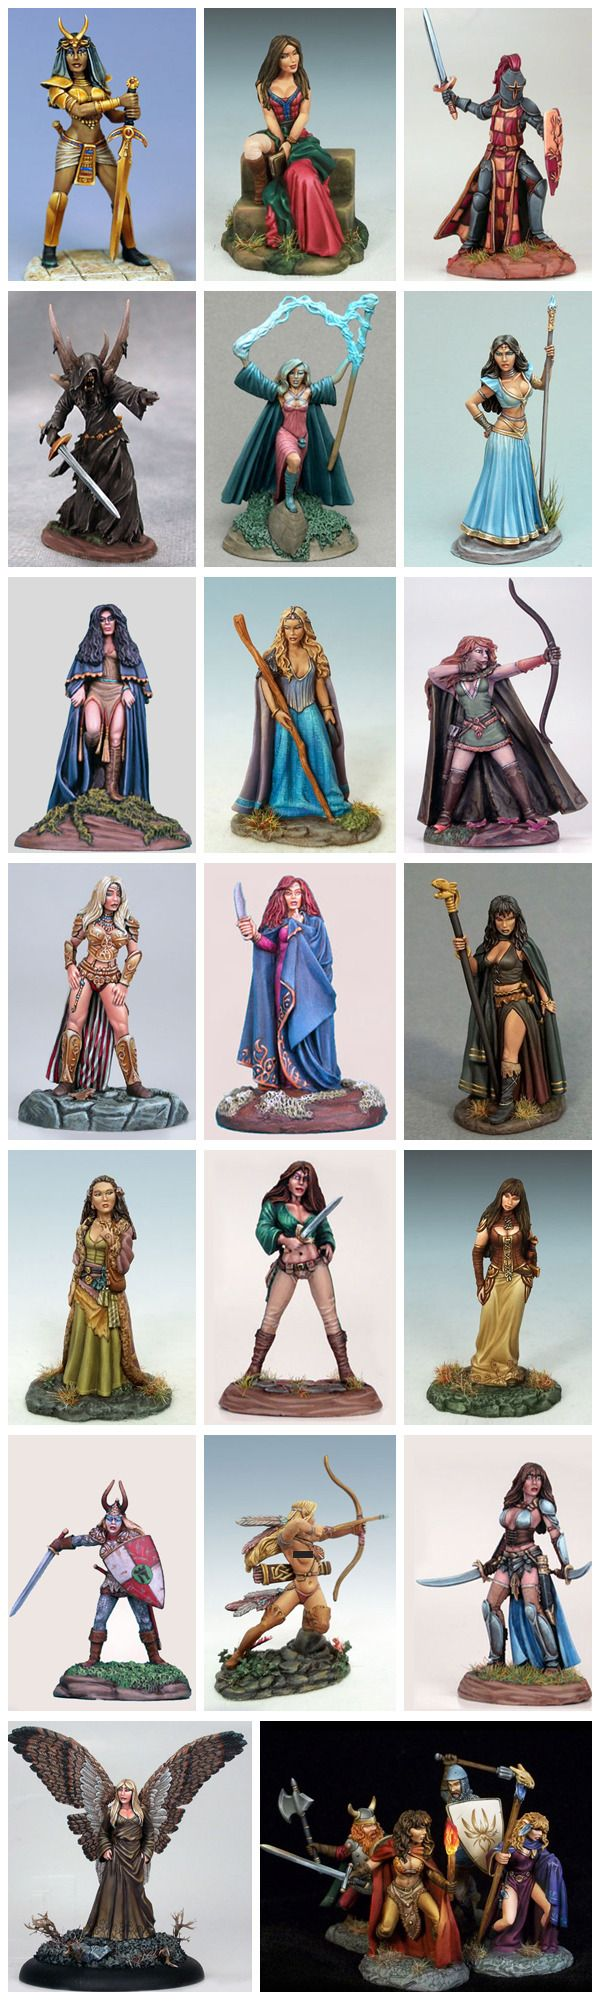 Dark Sword Miniatures GRRM Masterworks Major Line Expansion by Dark Sword Miniatures — Kickstarter